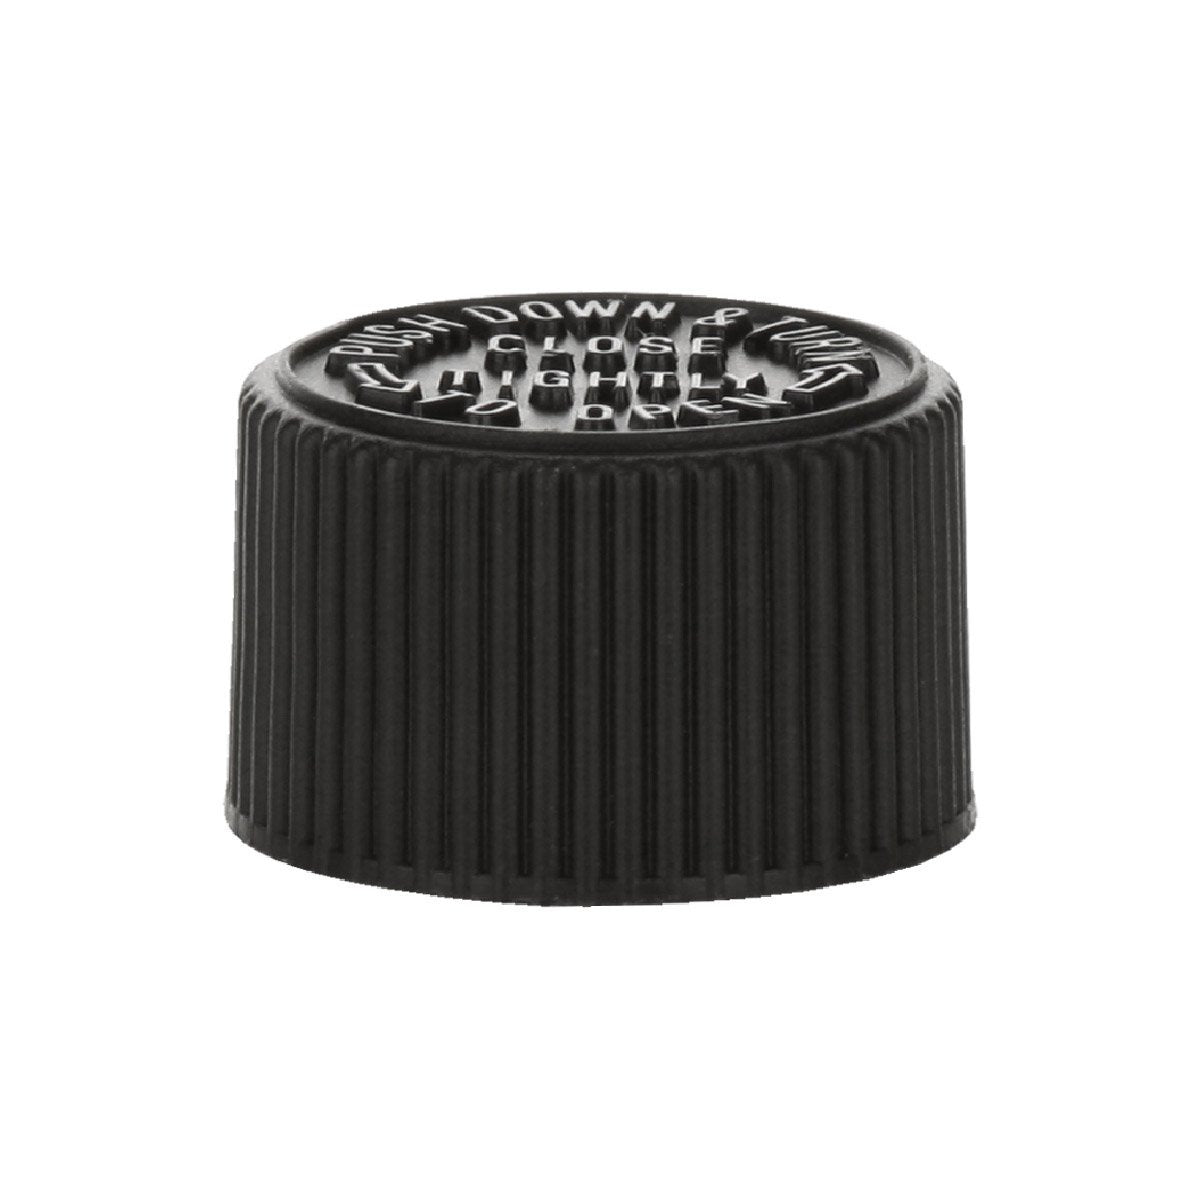 20mm Black Child Resistent Cap - VapeBunkerUK